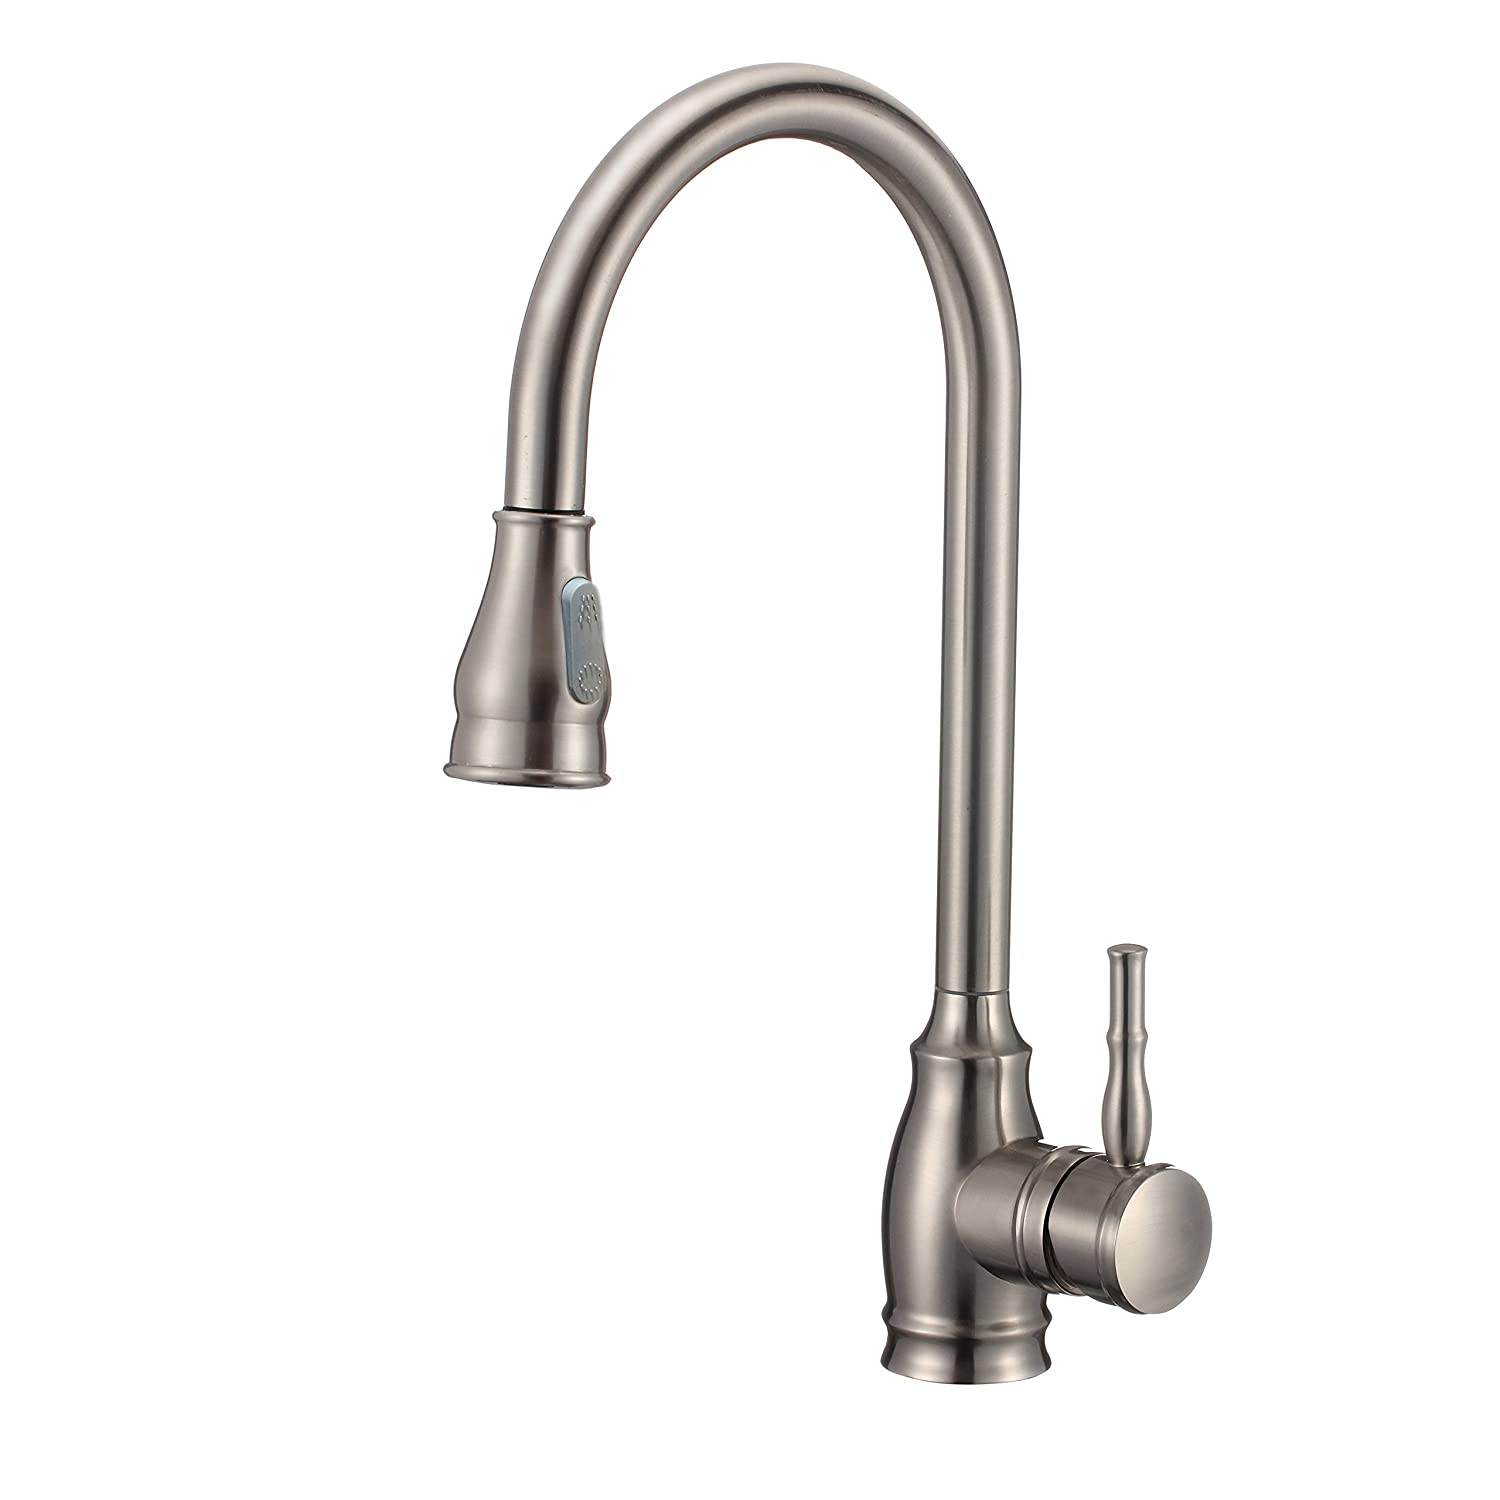 CRACCO SPA Single Handle Pull Out Sprayer Kitchen Sink Faucet With Deck Plate Single Lever Faucets With Pull Down Sprayer Brushed Nickel